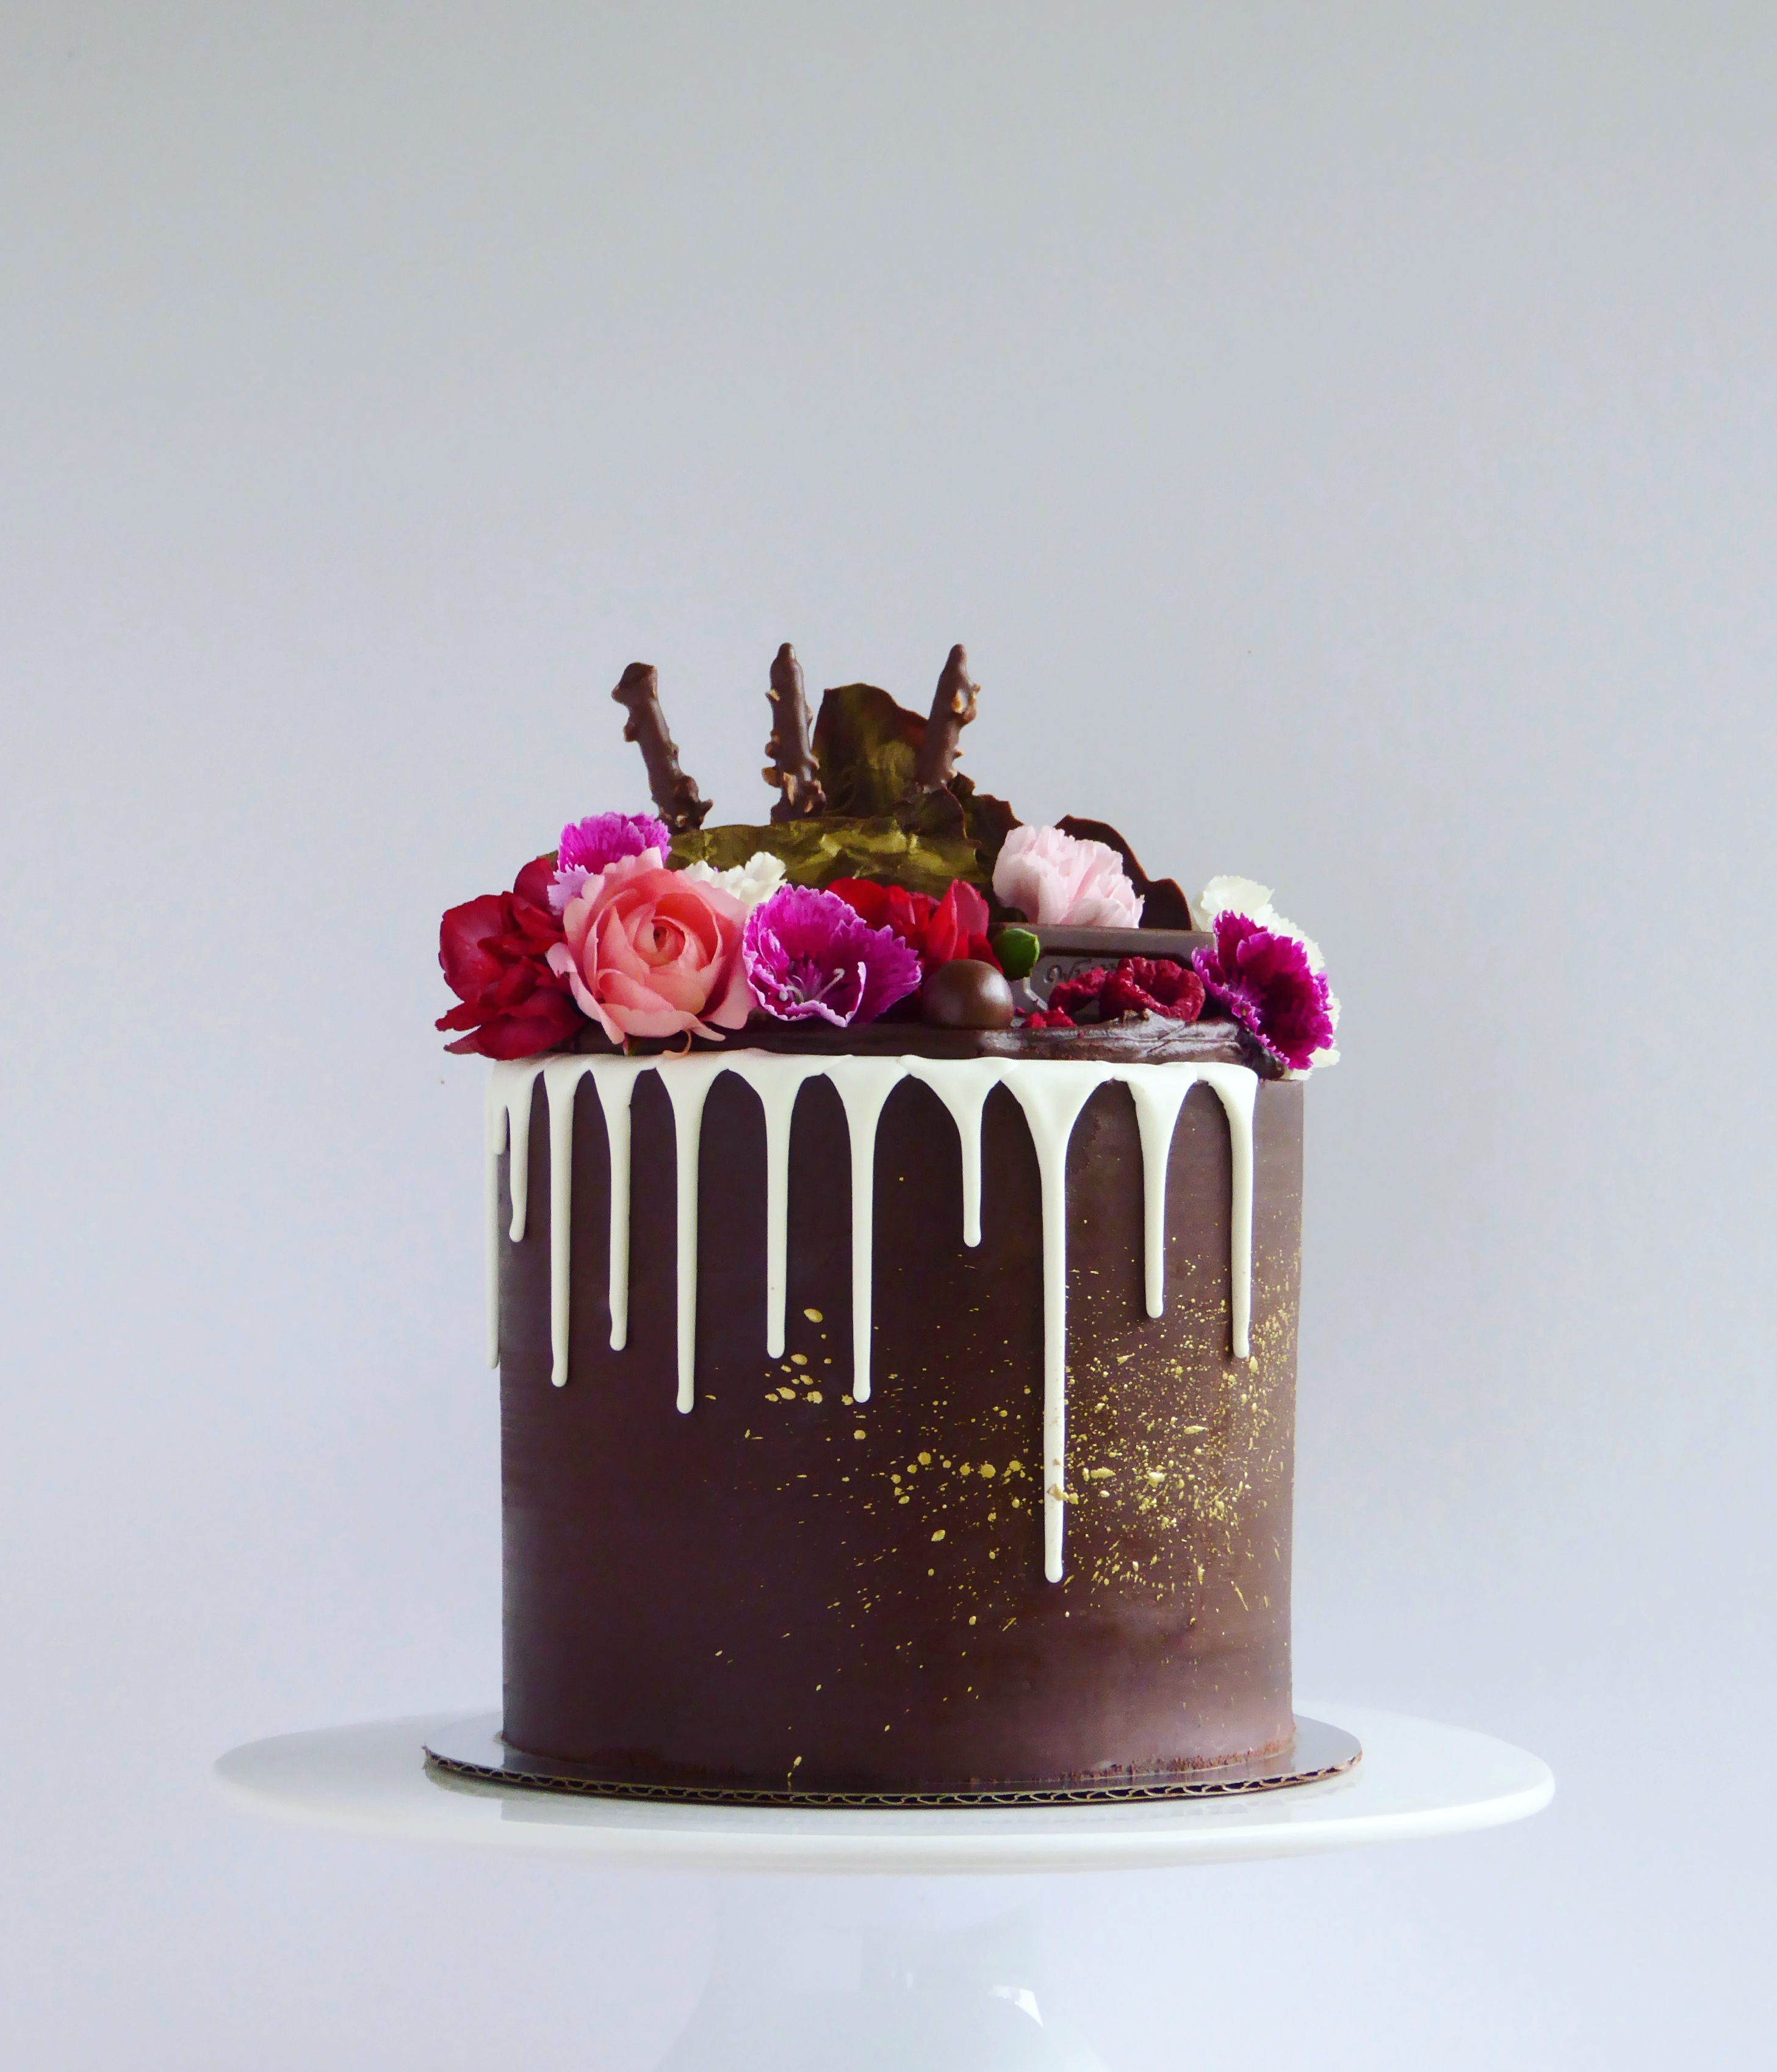 CHOCOLATE FLORAL